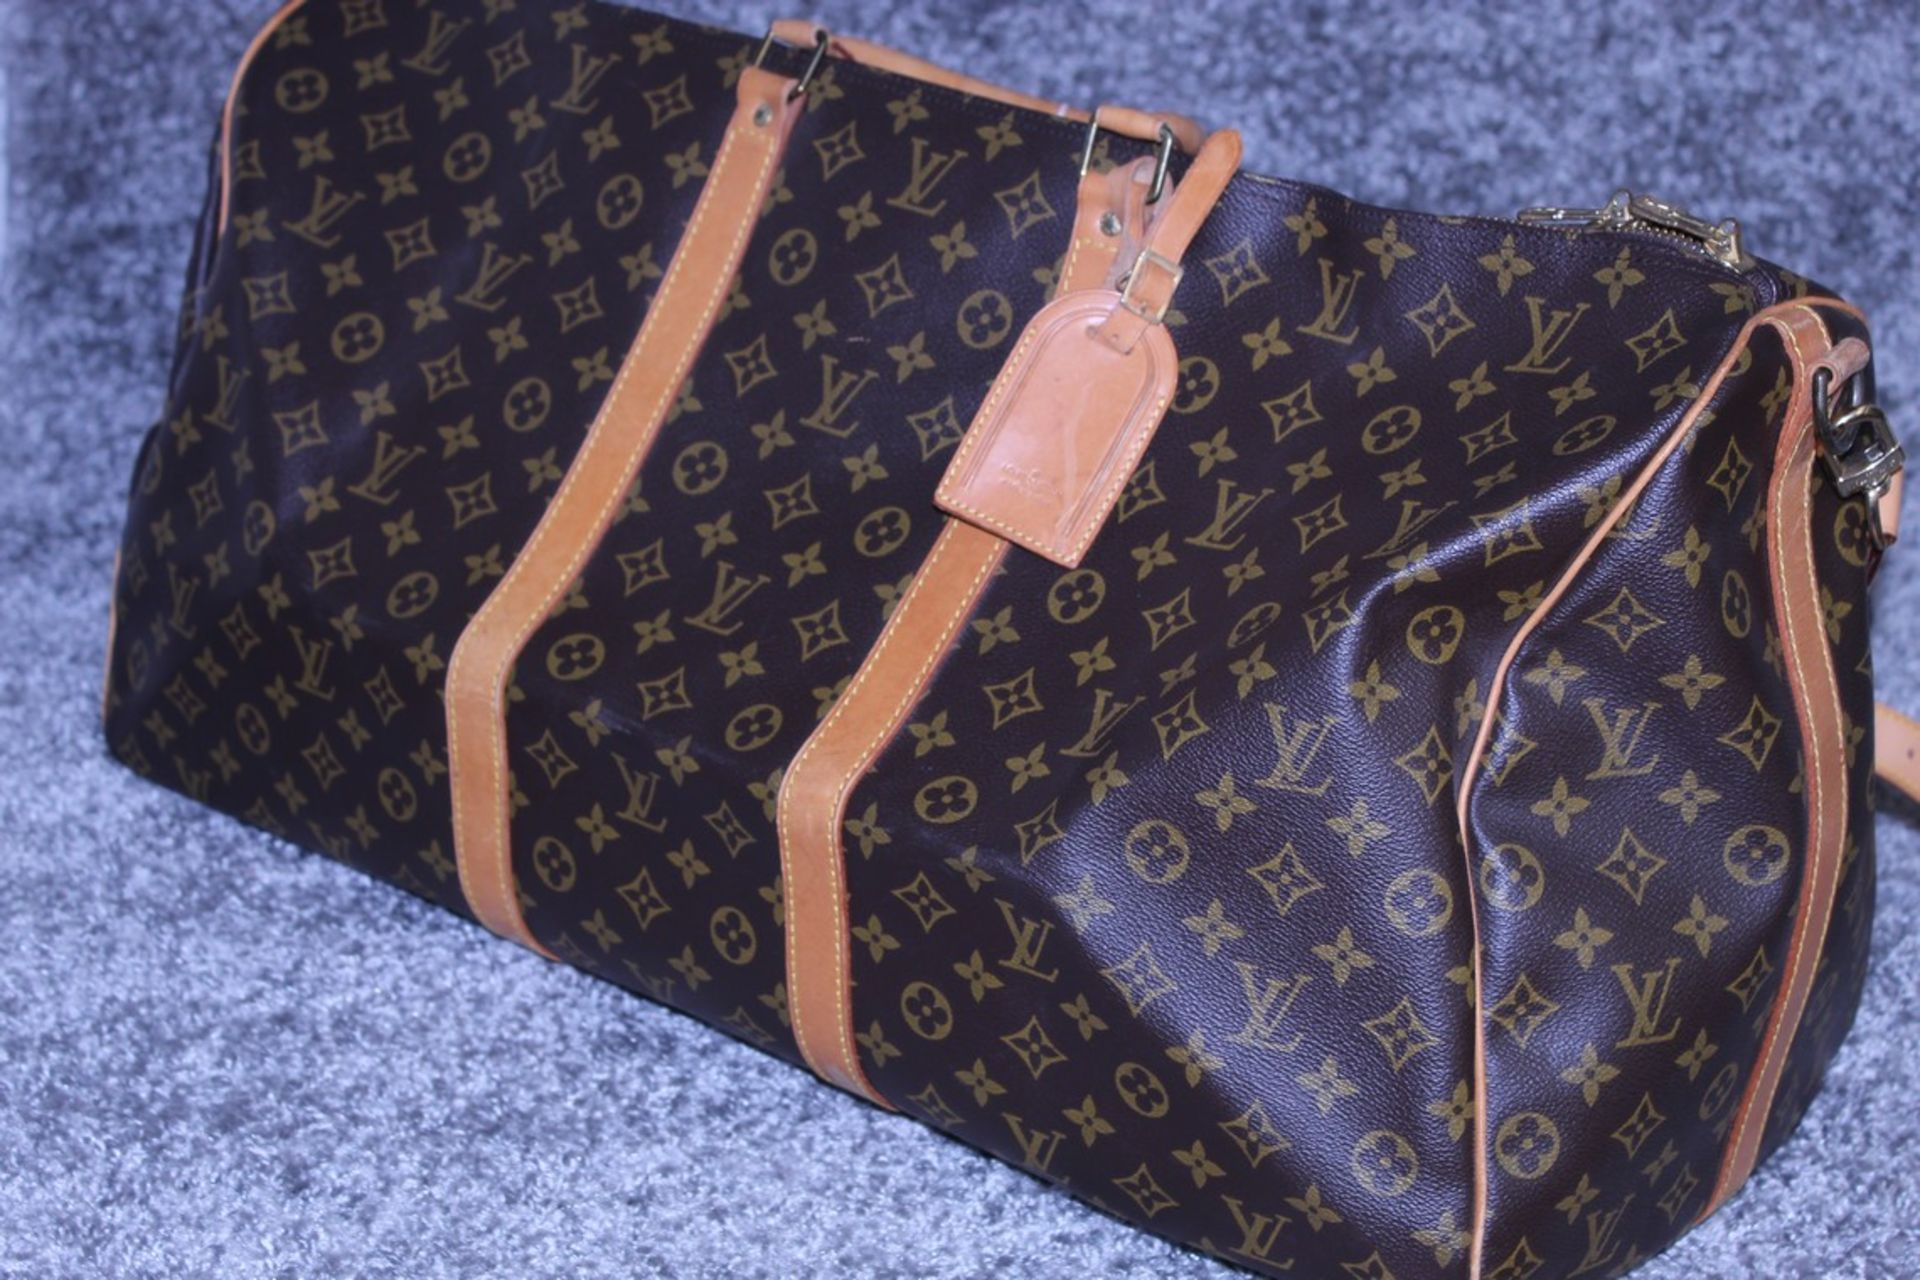 RRP £1,800 Louis Vuitton Keepall 60 Bandouliere Travel Bag, Brown Coated Canvas Monogram, 60X26X31Cm - Image 3 of 5